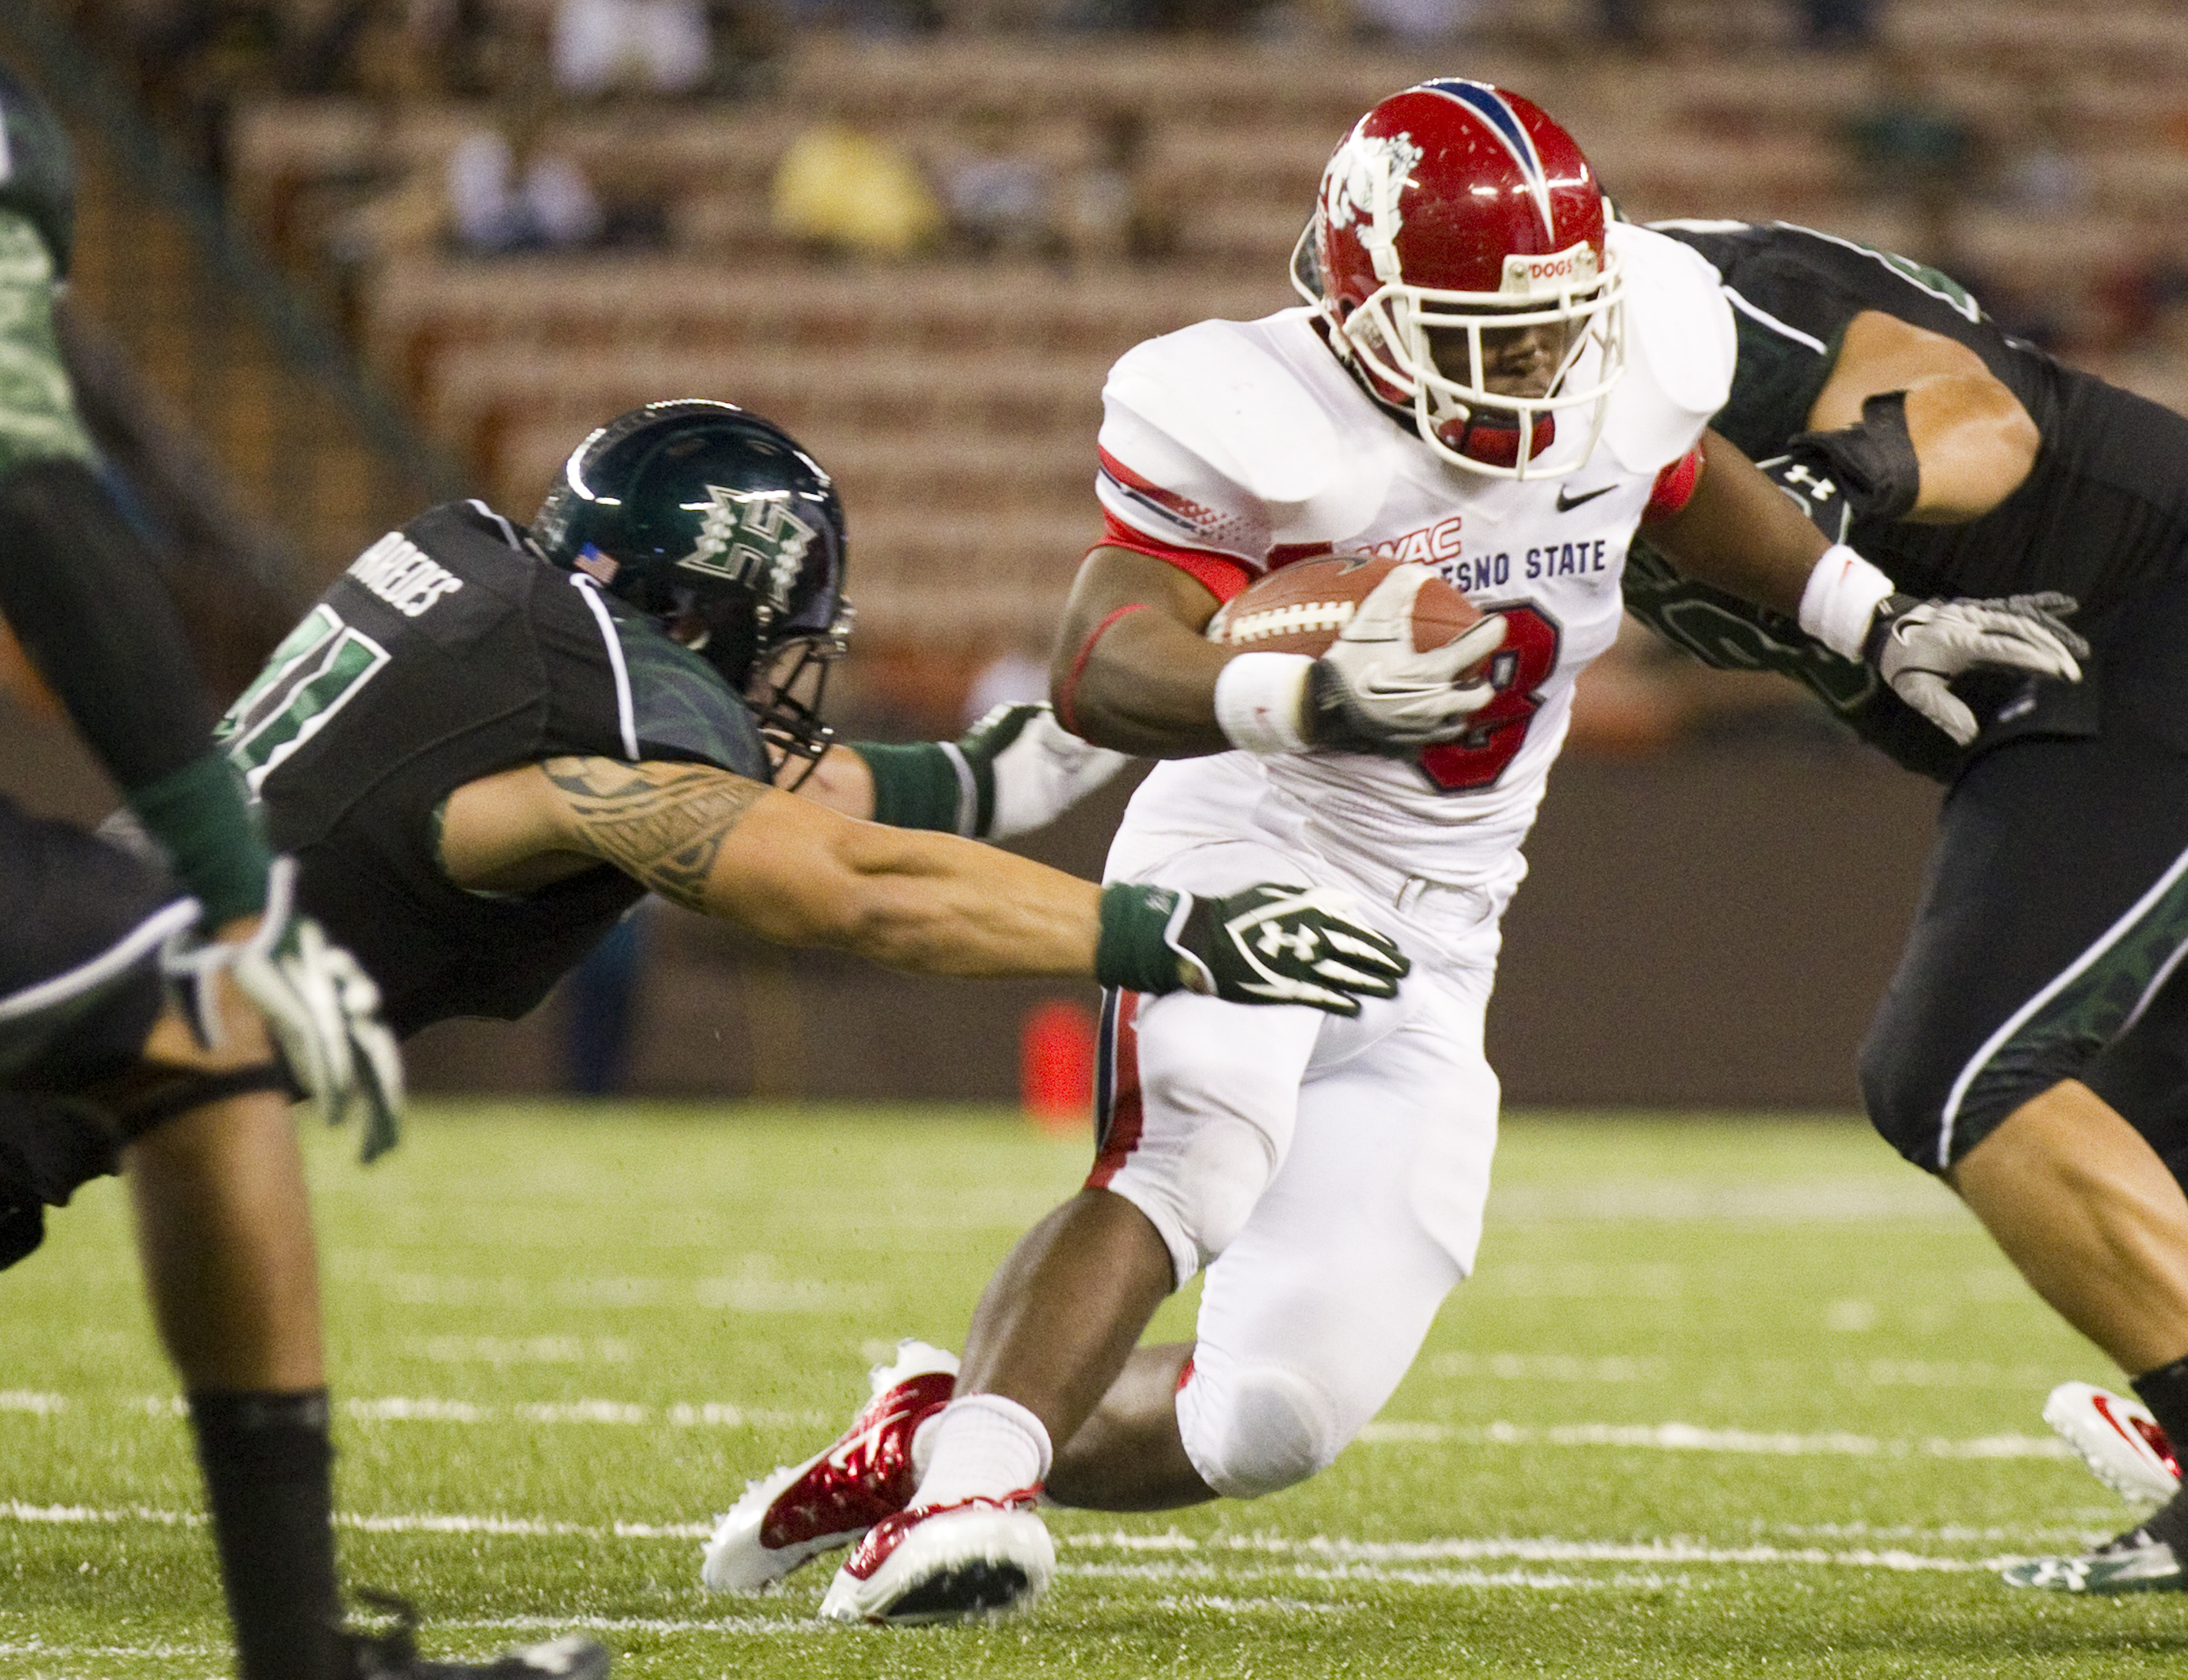 Robbie Rouse has been a productive back for Fresno State and will be a three-year starter. (AP)